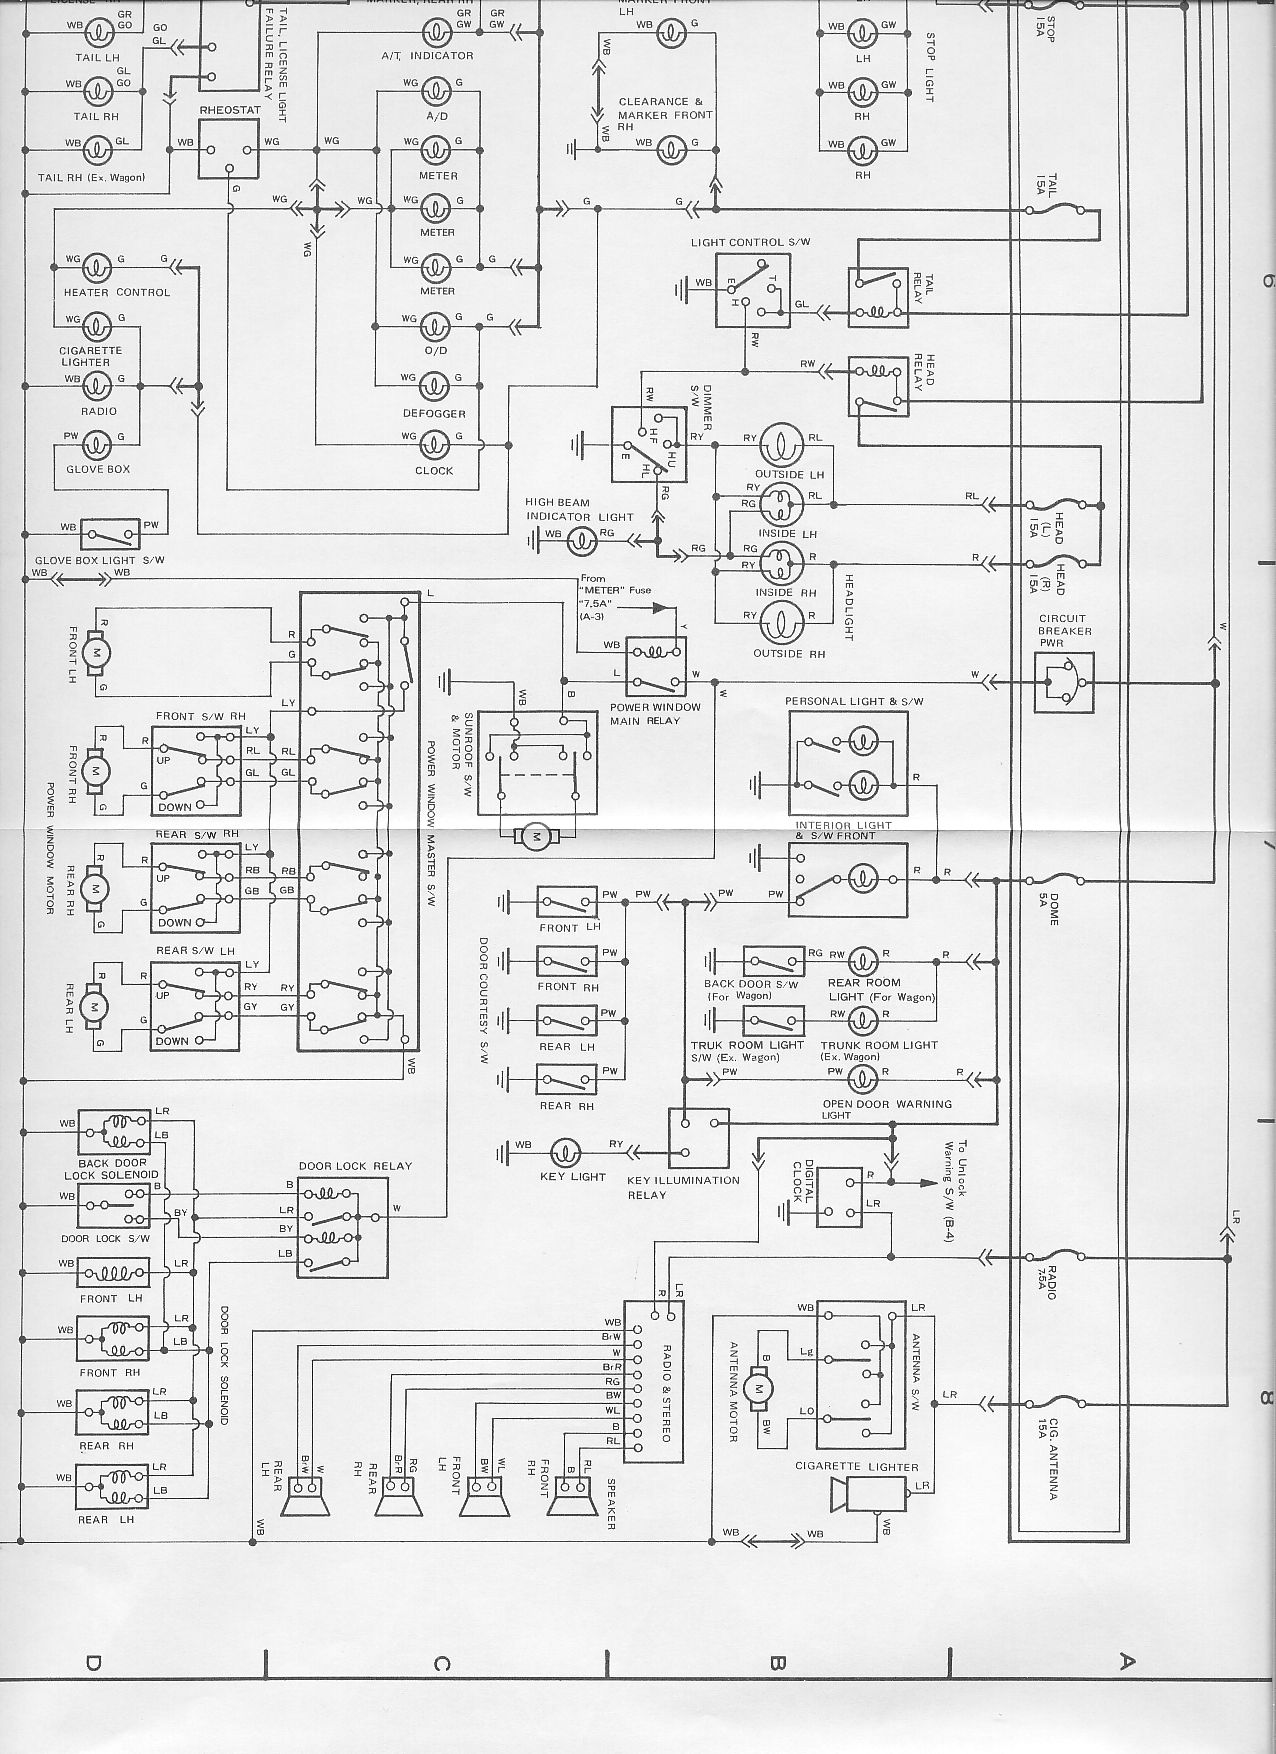 1985 Toyota Celica Fuse Box Illustration Of Wiring Diagram \u2022 89 Toyota  Pickup Fuse Diagram 1986 Toyota Supra Fuse Box